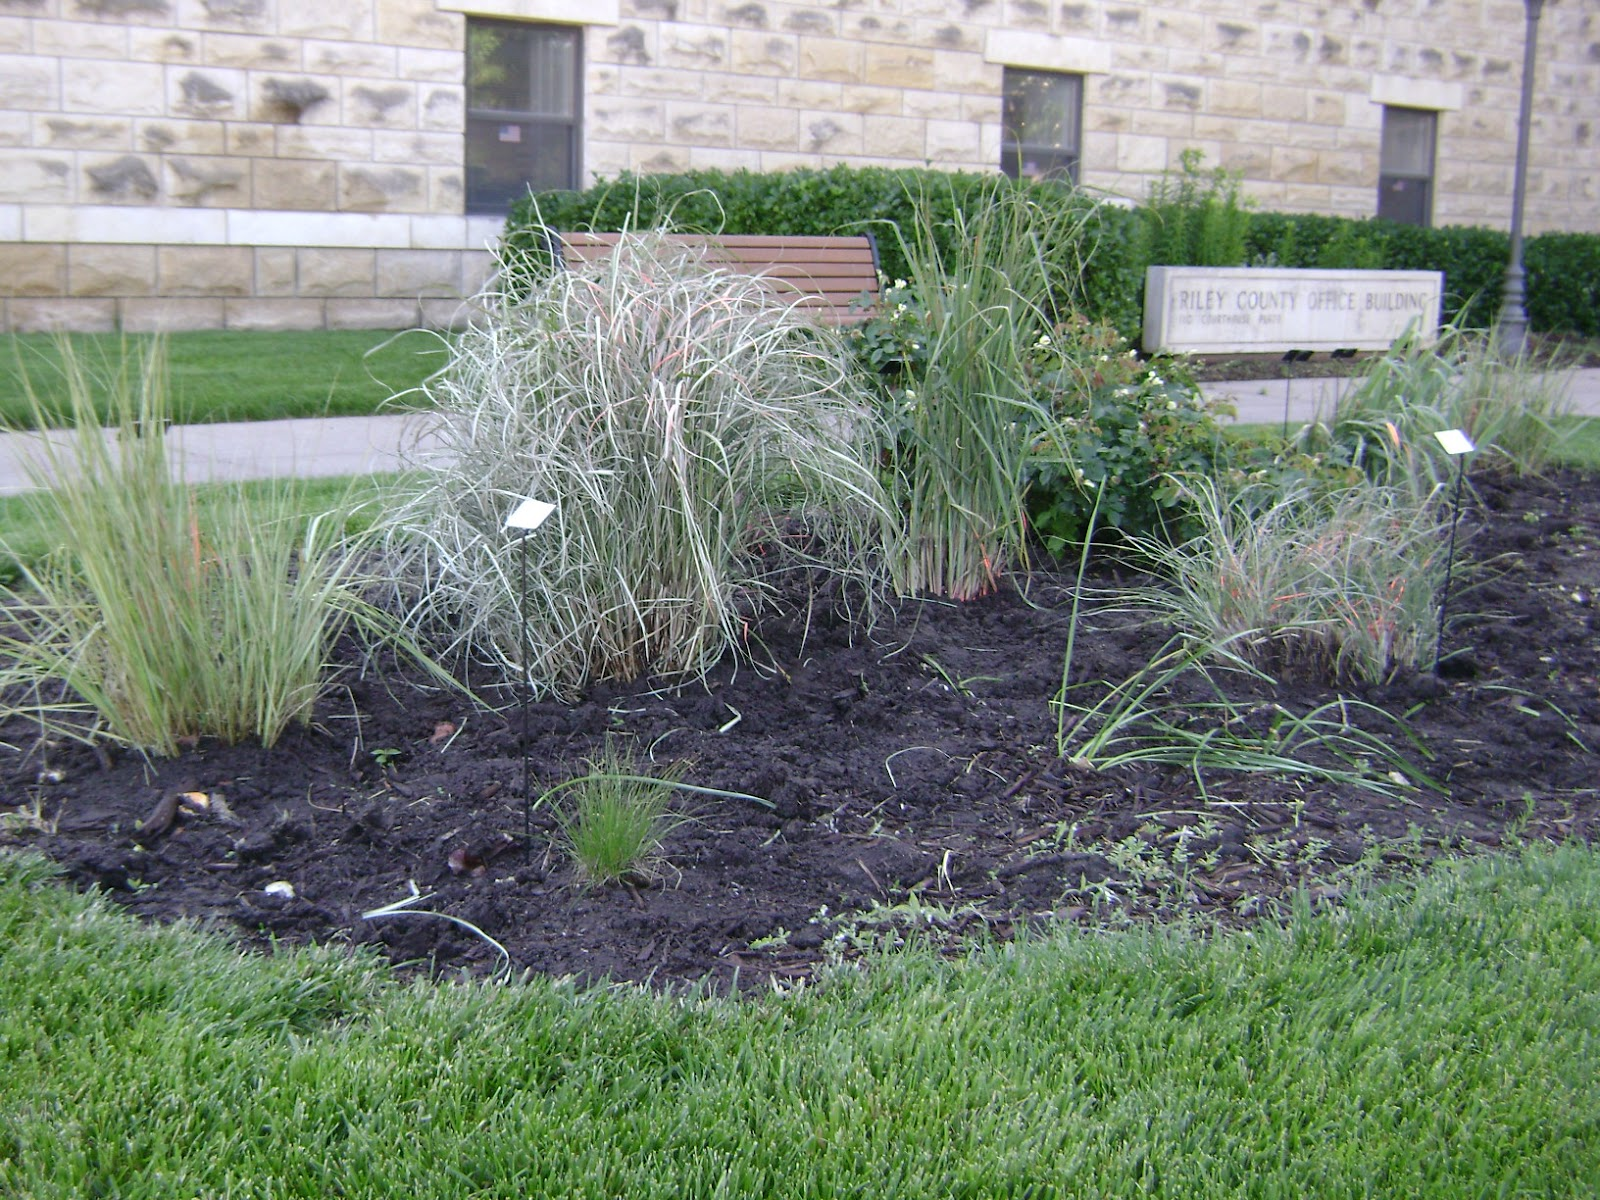 Riley county extension blog may 2012 for Ornamental grass bed